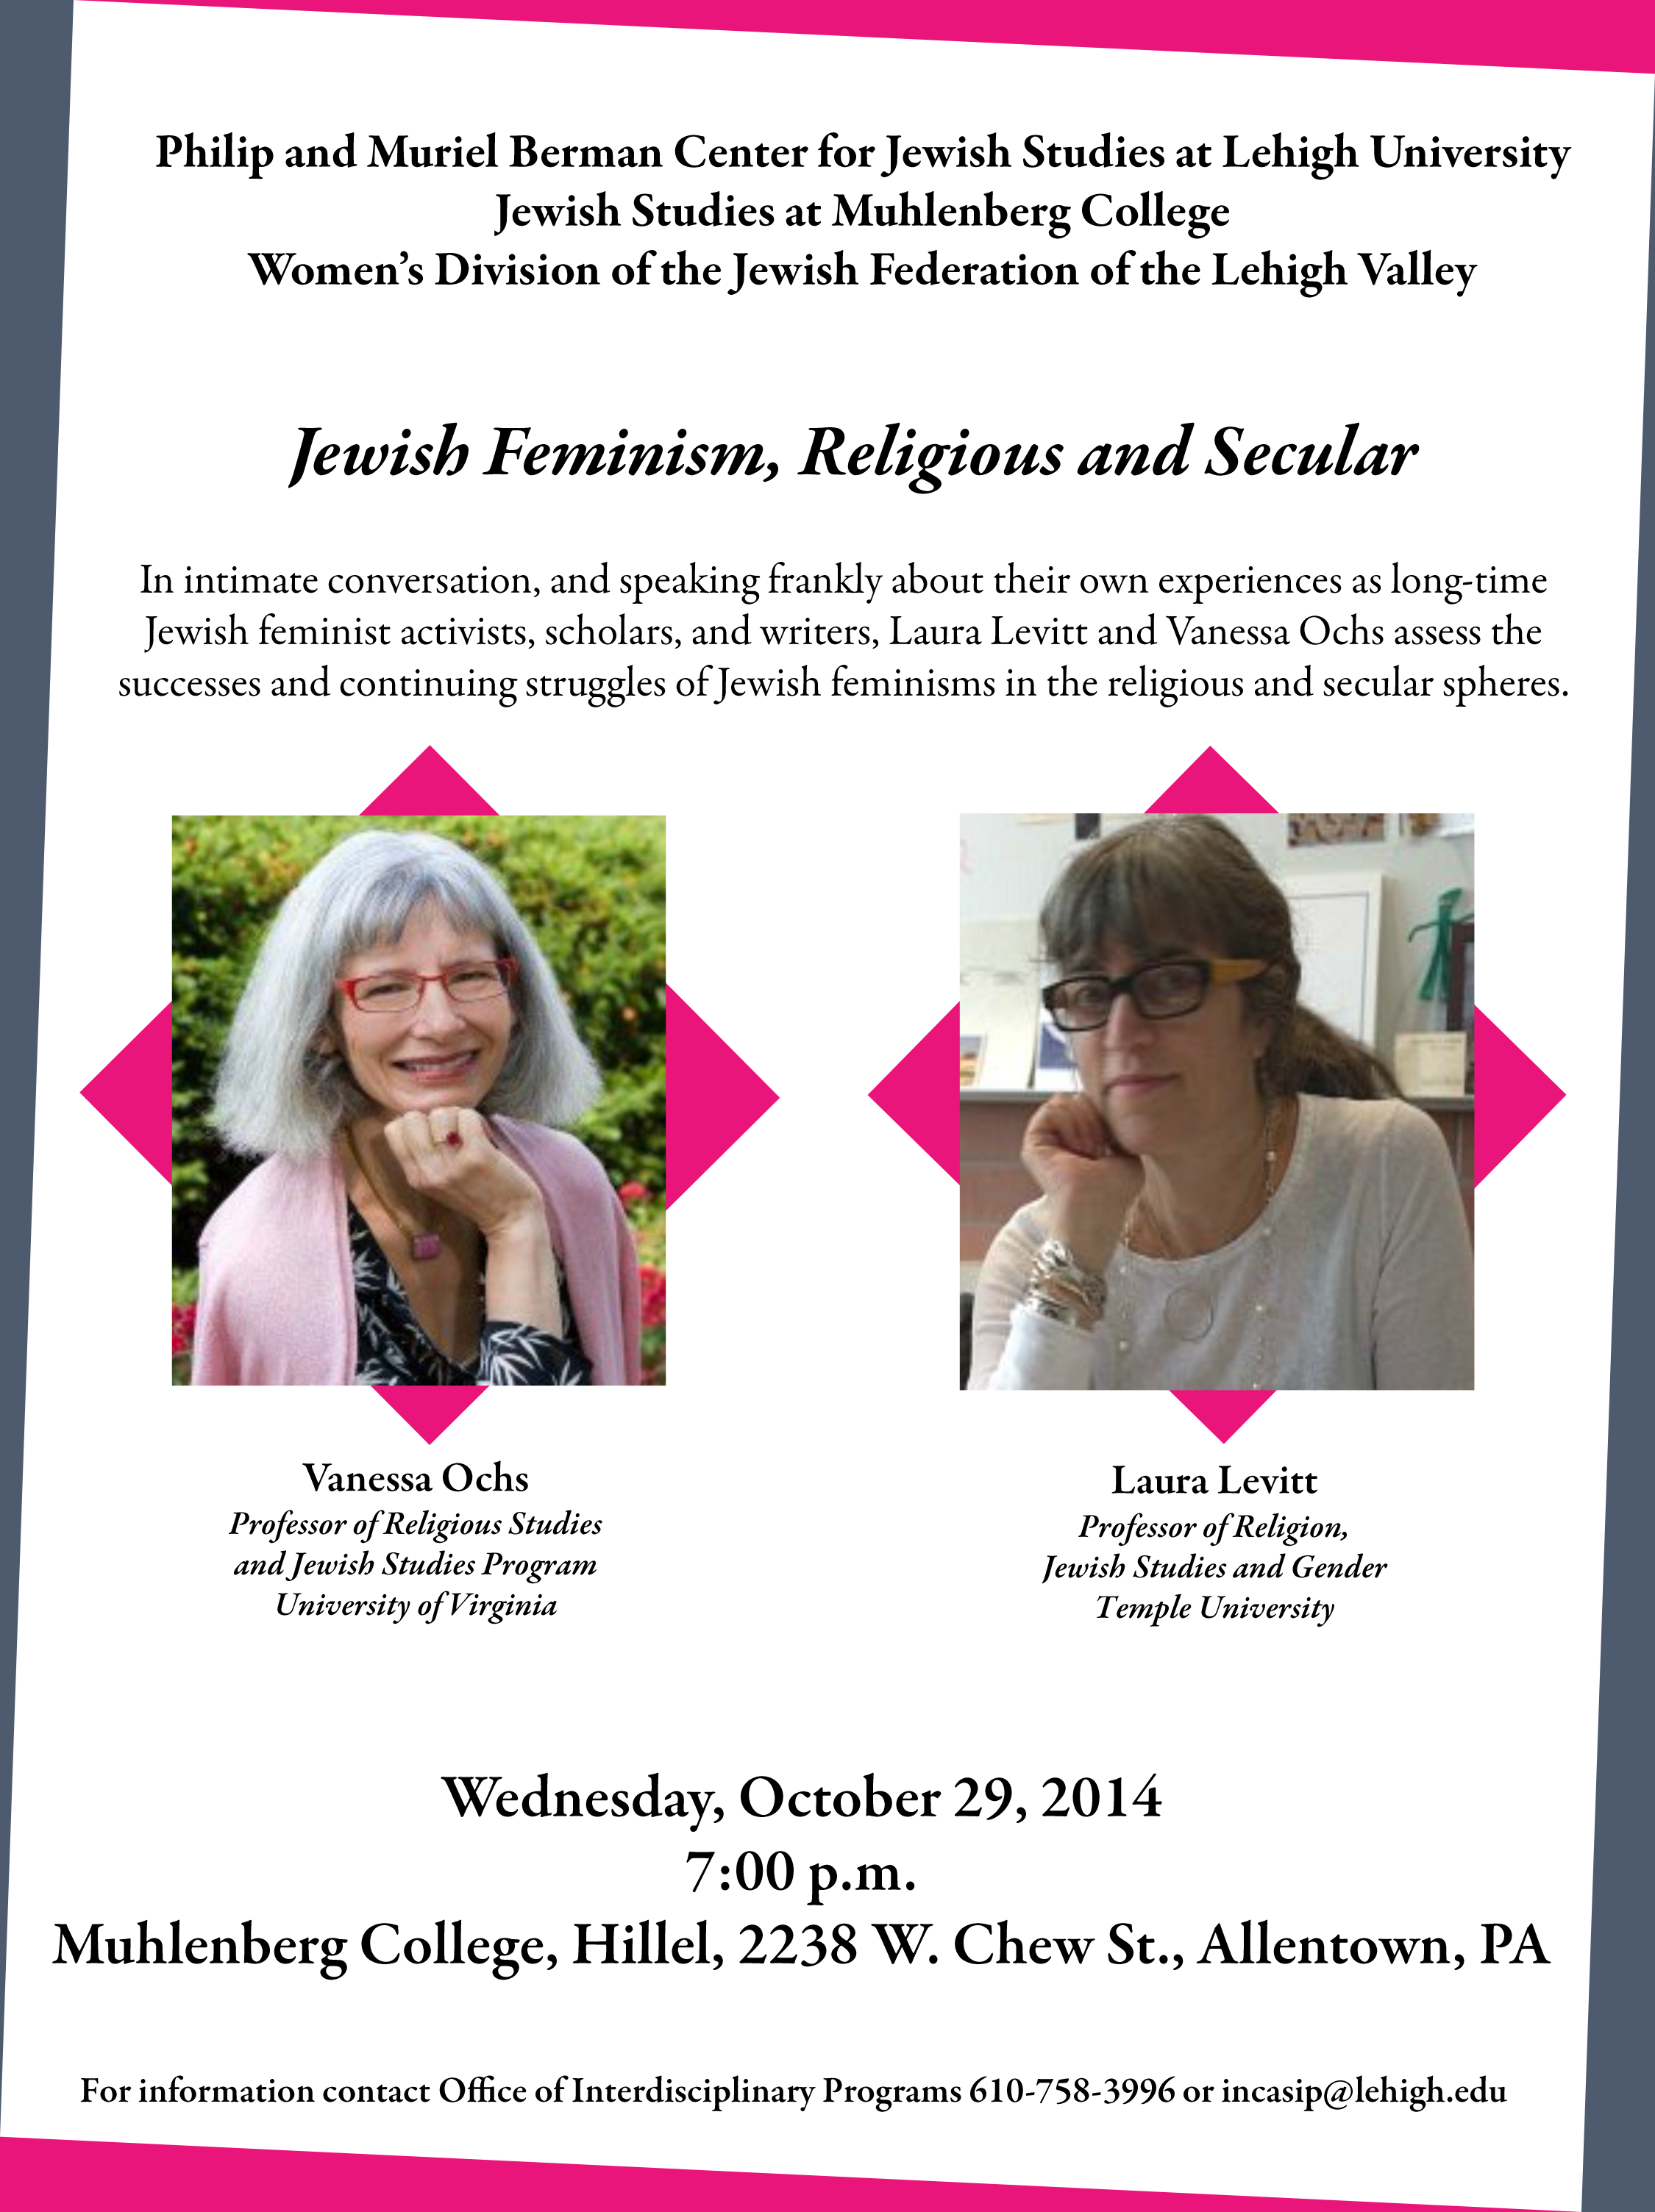 Jewish Feminism, Religious and Secular presented by Vanessa Ochs and Laura Levitt